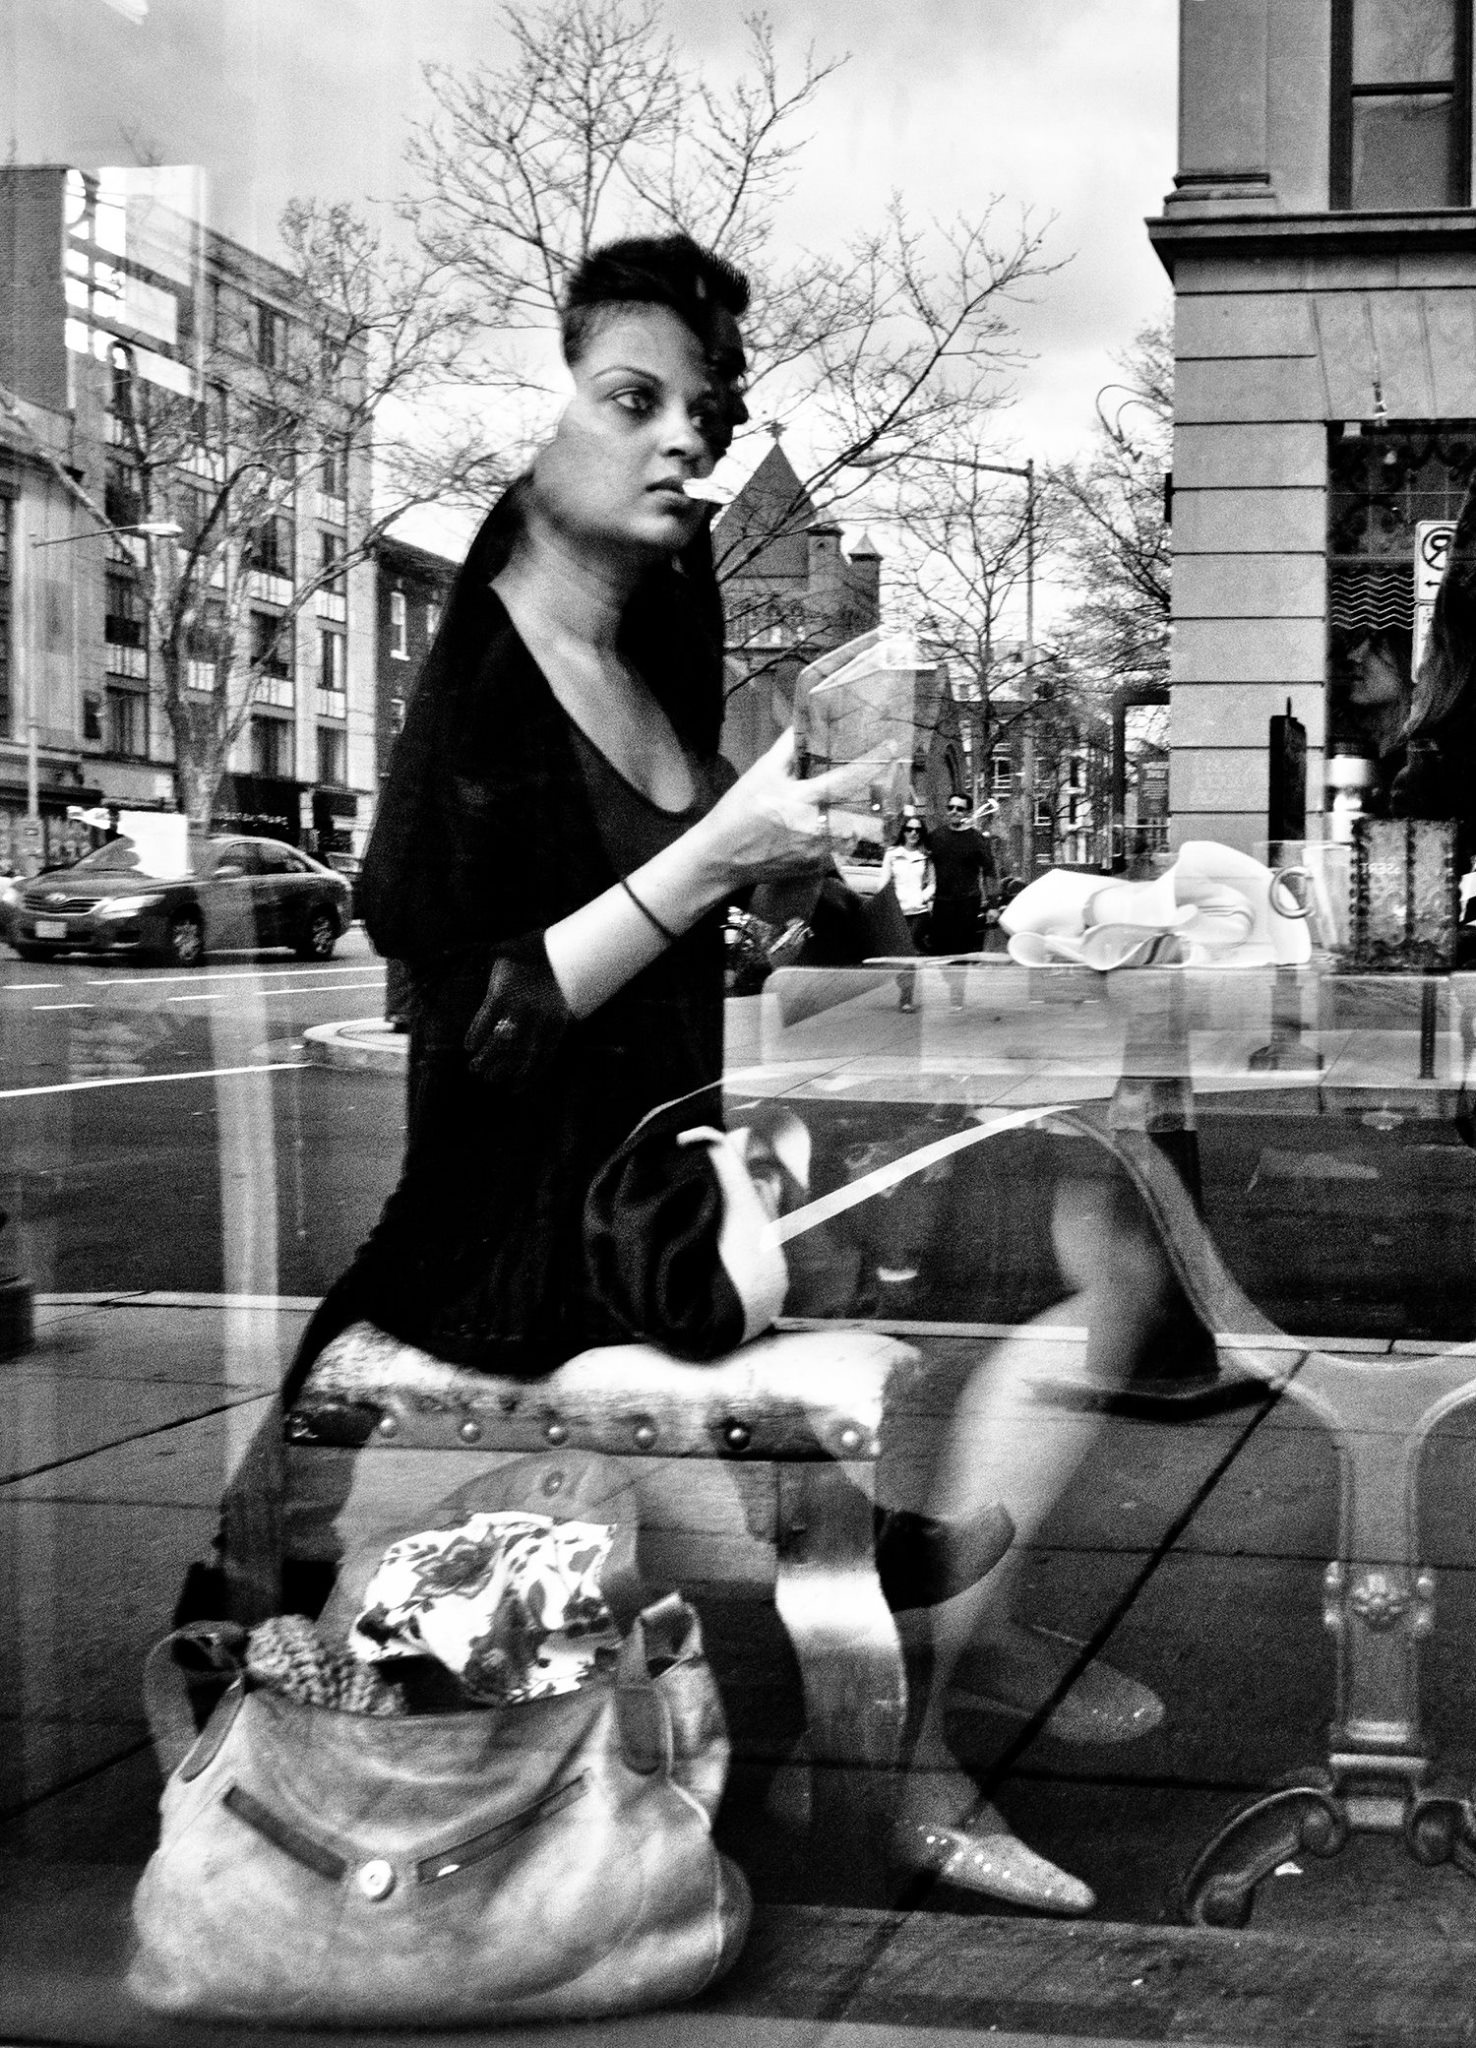 Corner Cafe Window in Washington, DC by Mike Raker